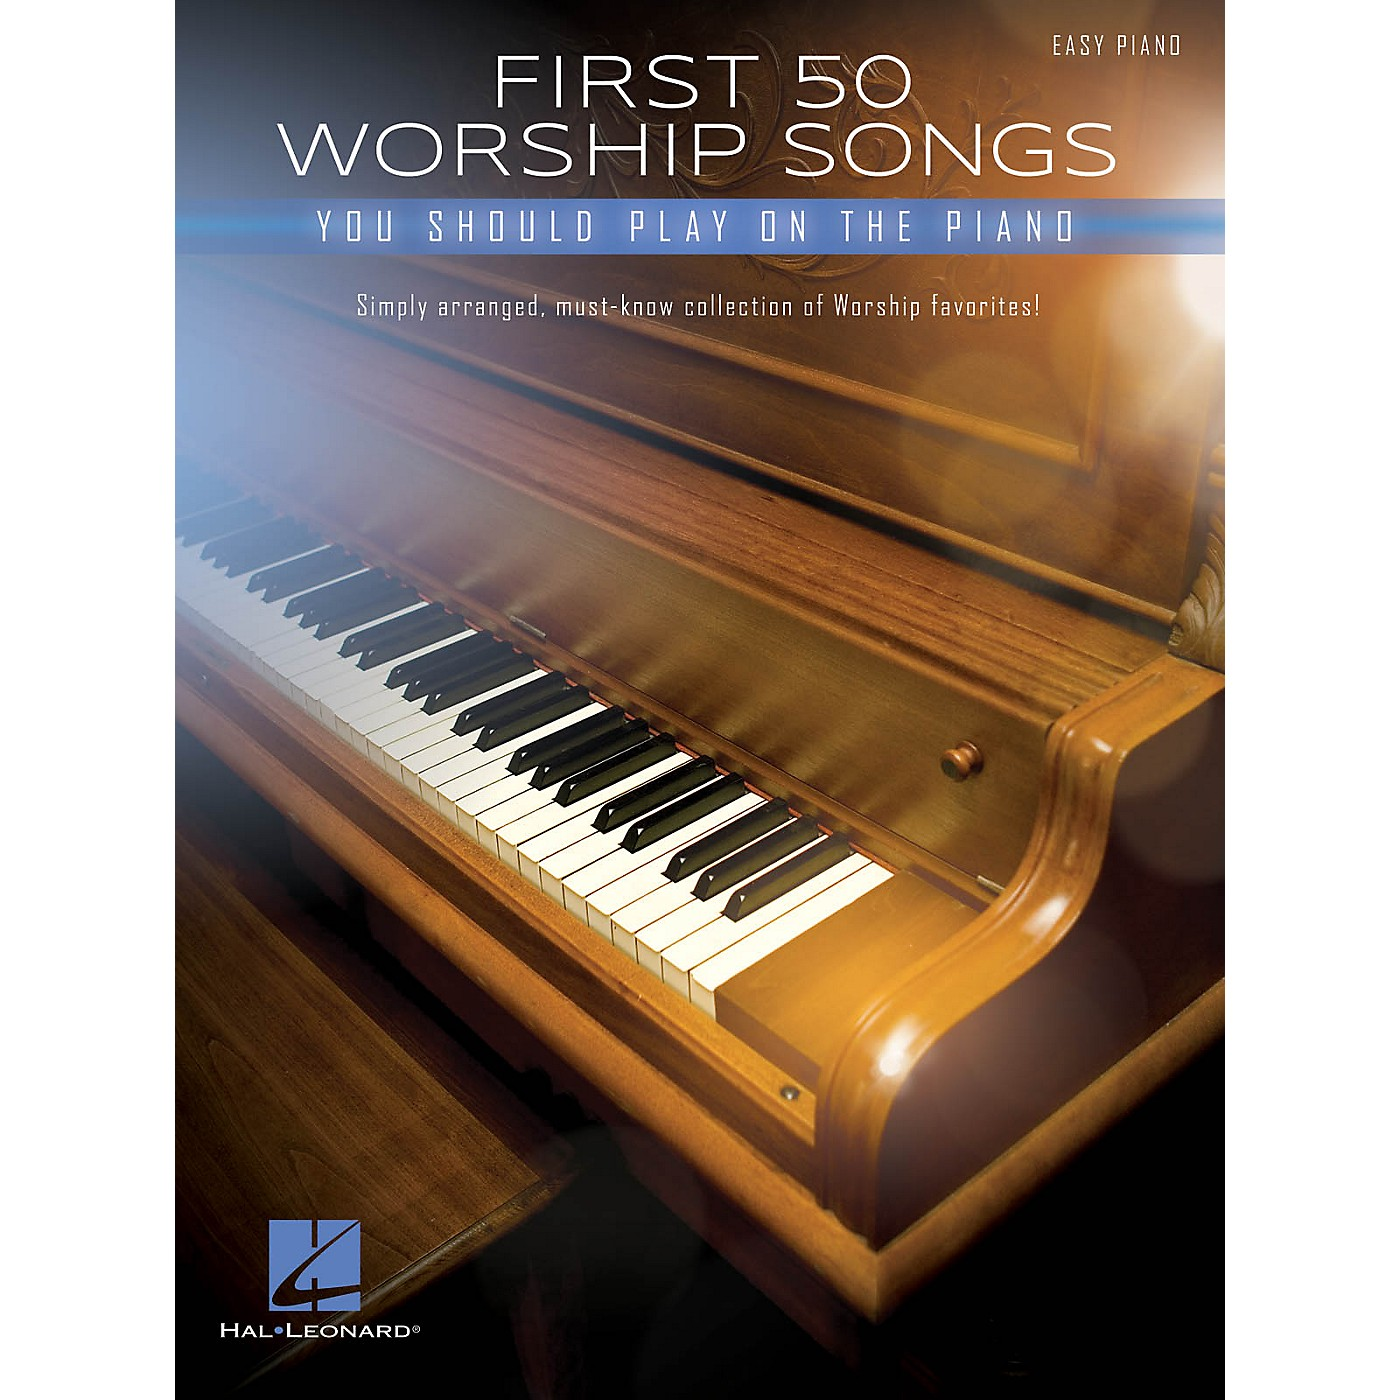 Hal Leonard First 50 Worship Songs You Should Play on Piano - Easy Piano Songbook thumbnail